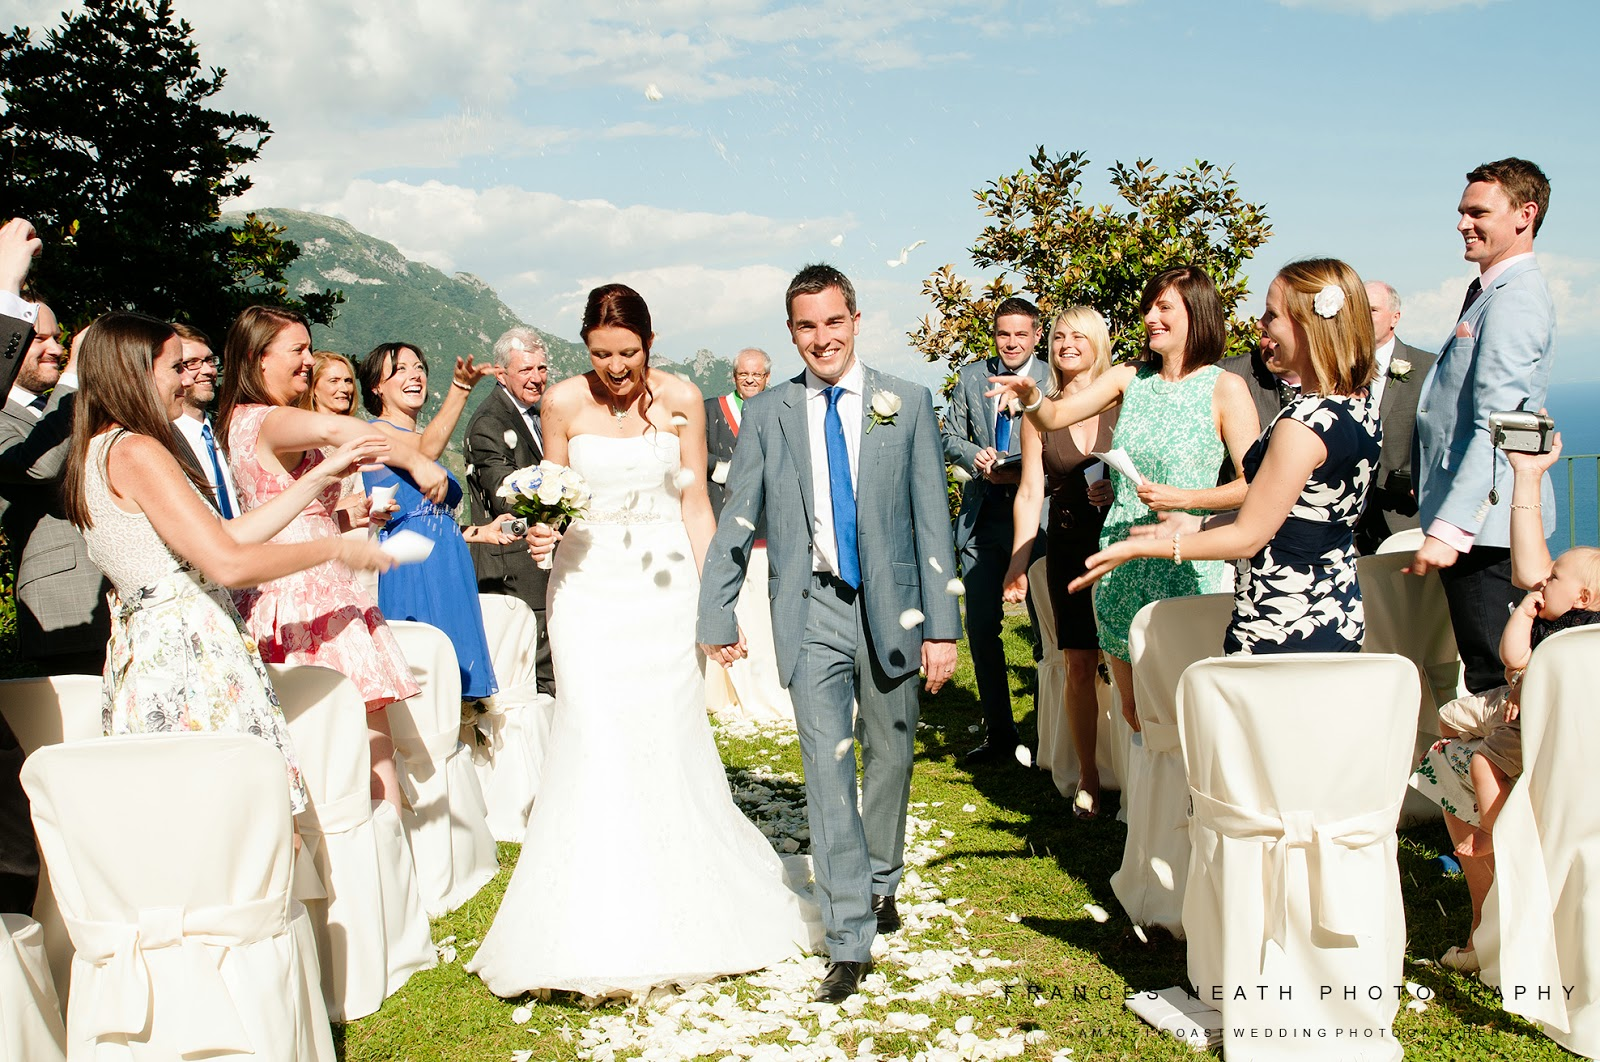 Wedding guests throwing confetti at the town hall in Ravello